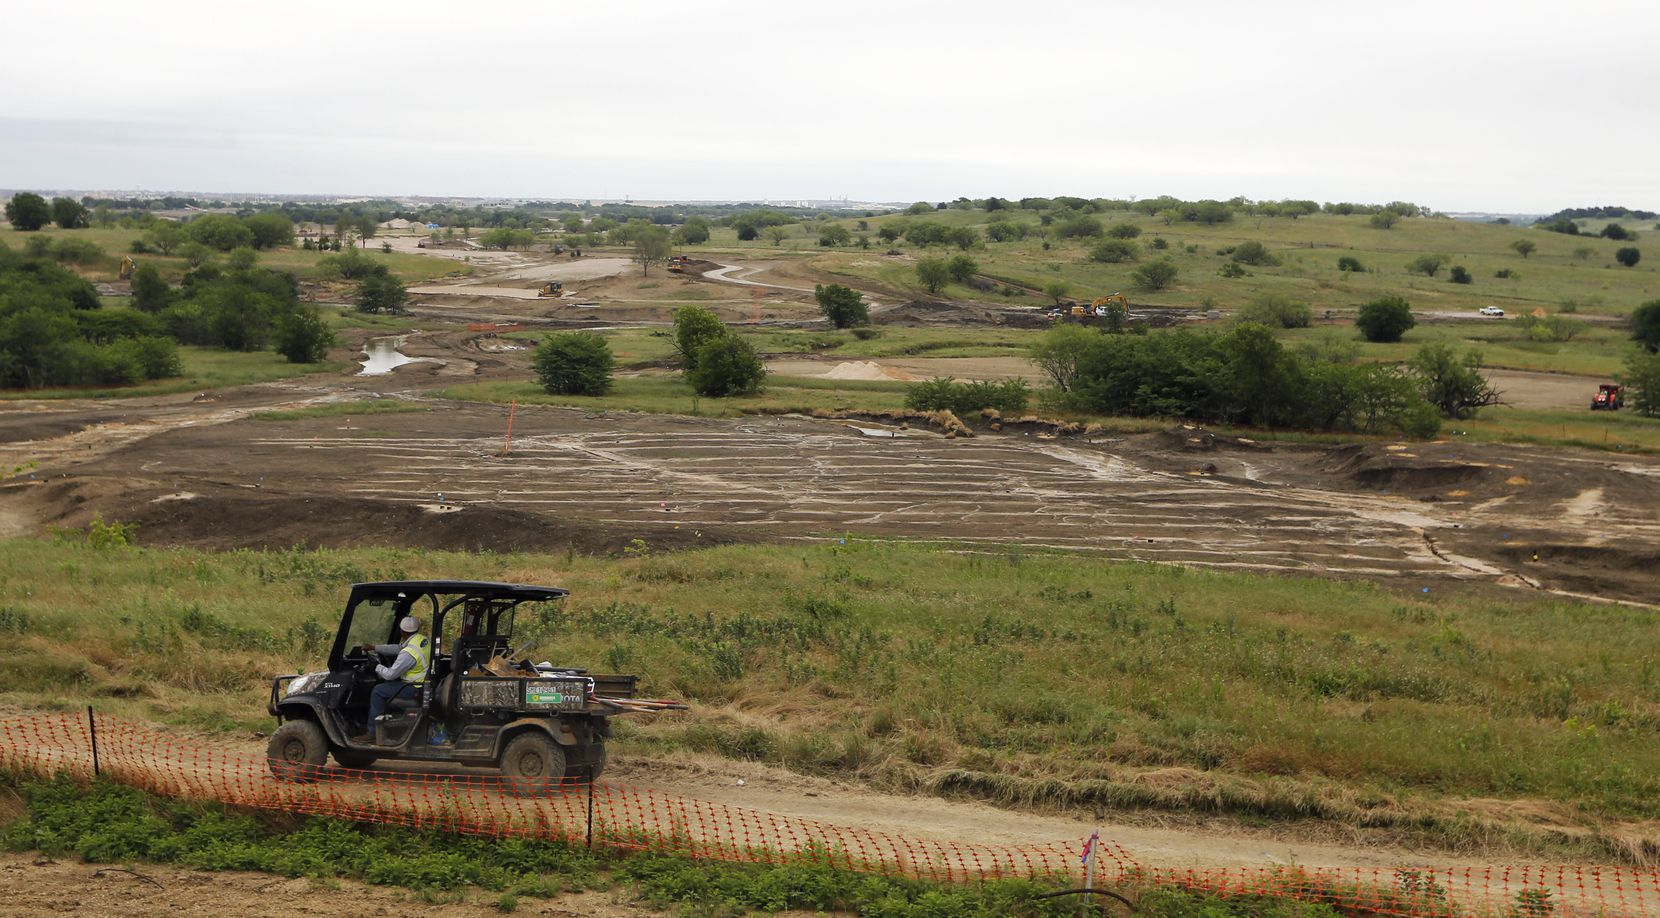 View of hole 3 of the East Course designed by Gil Hanse at PGA Frisco in Frisco, Texas, on Wednesday, May 20, 2020. The $520 million project is a mixed-use development that will be home to the PGA of America headquarters and two championship golf courses.